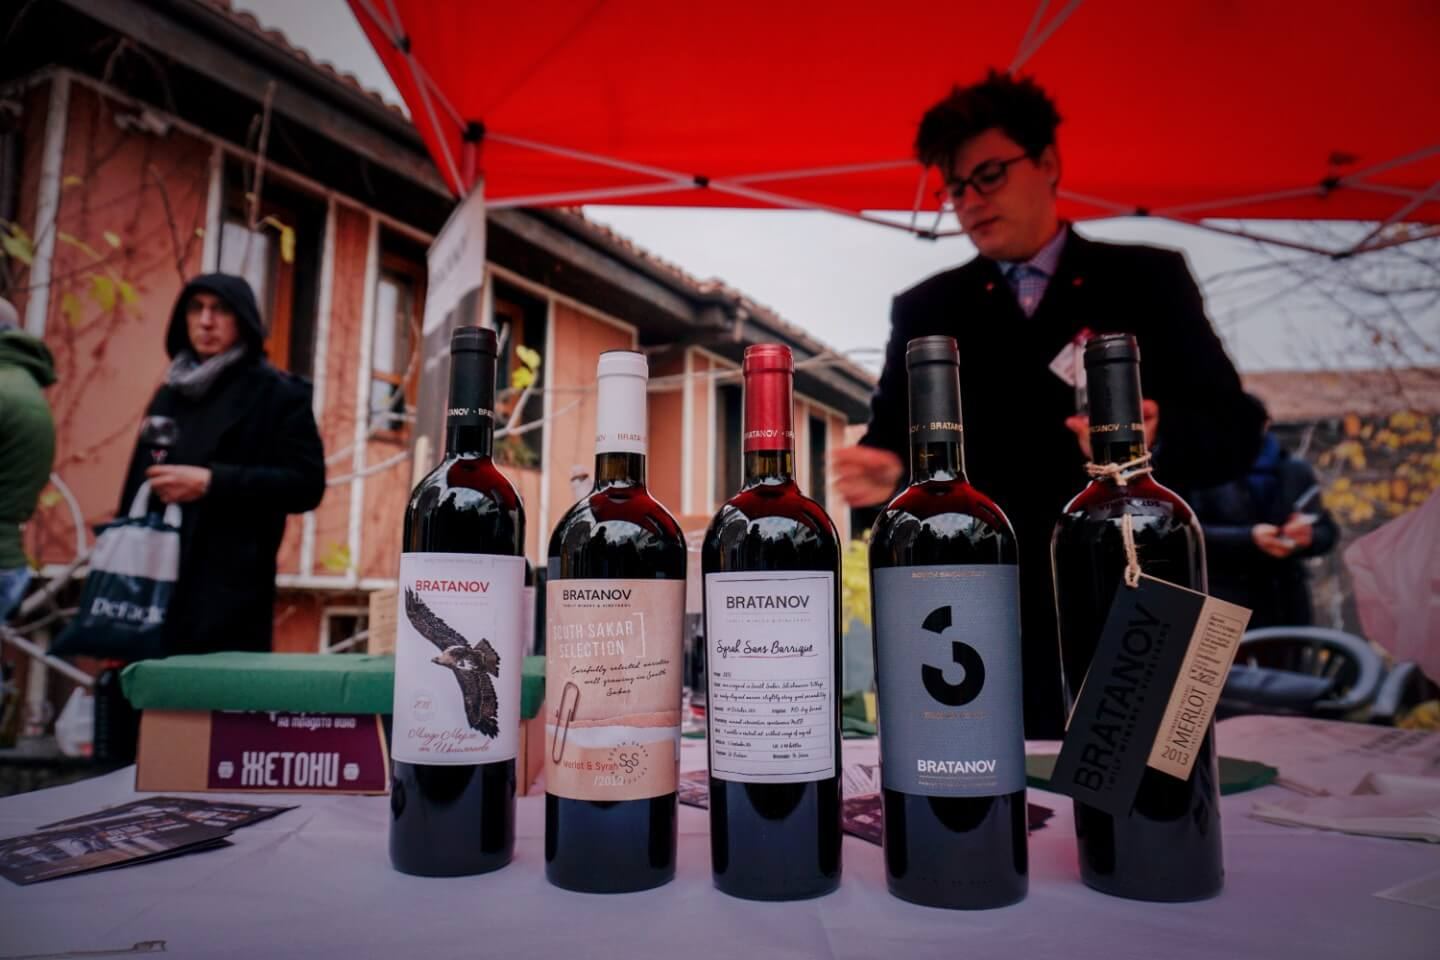 Bratanov wine tasting, Young Wine Festival, Plovdiv | 6 things we learned while wine tasting in Bulgaria